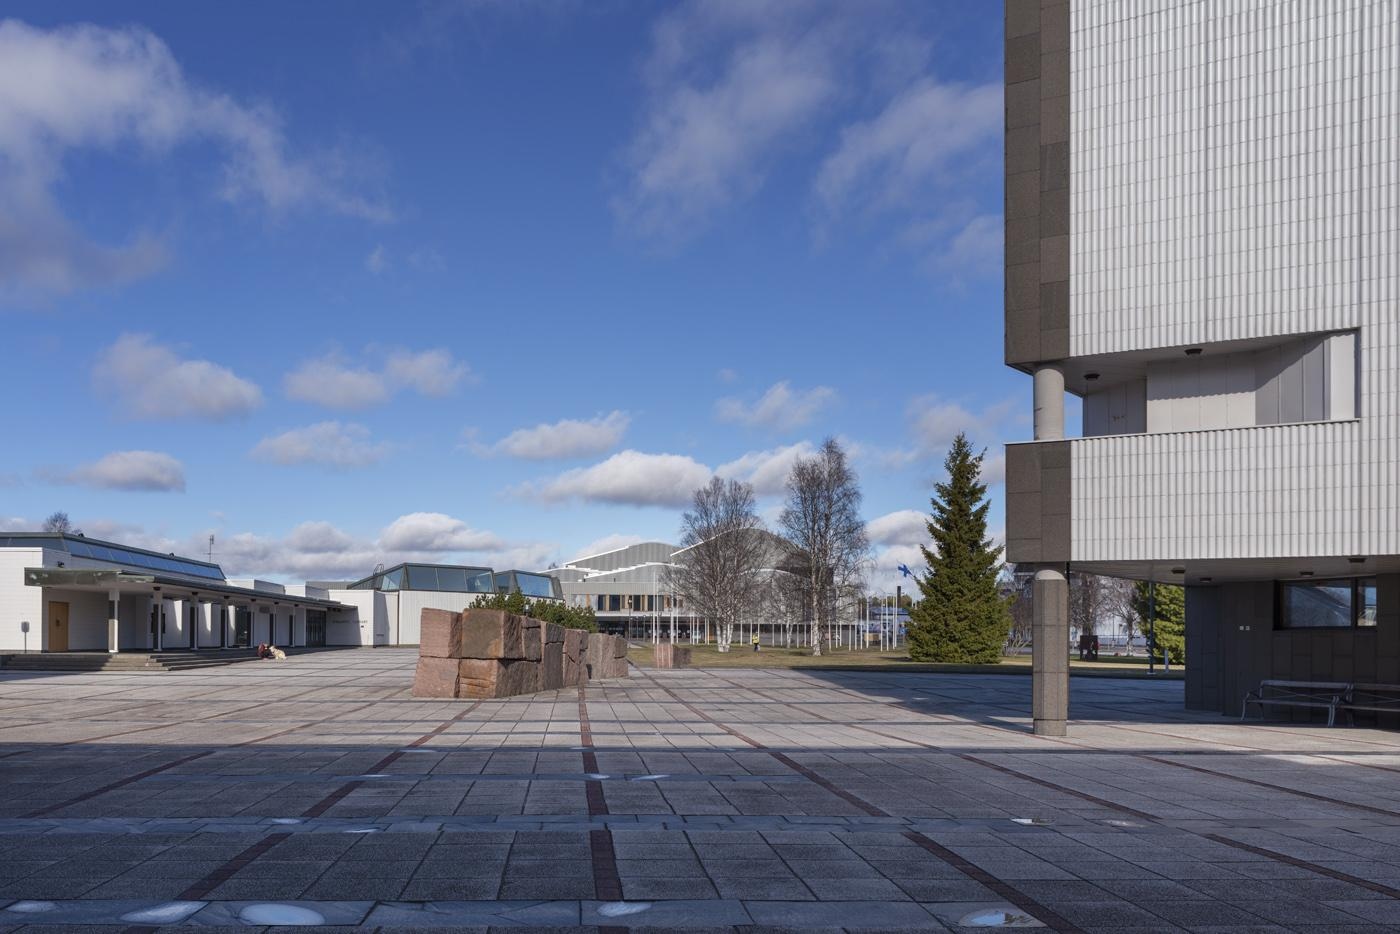 The Administrative and Cultural Centre of Rovaniemi